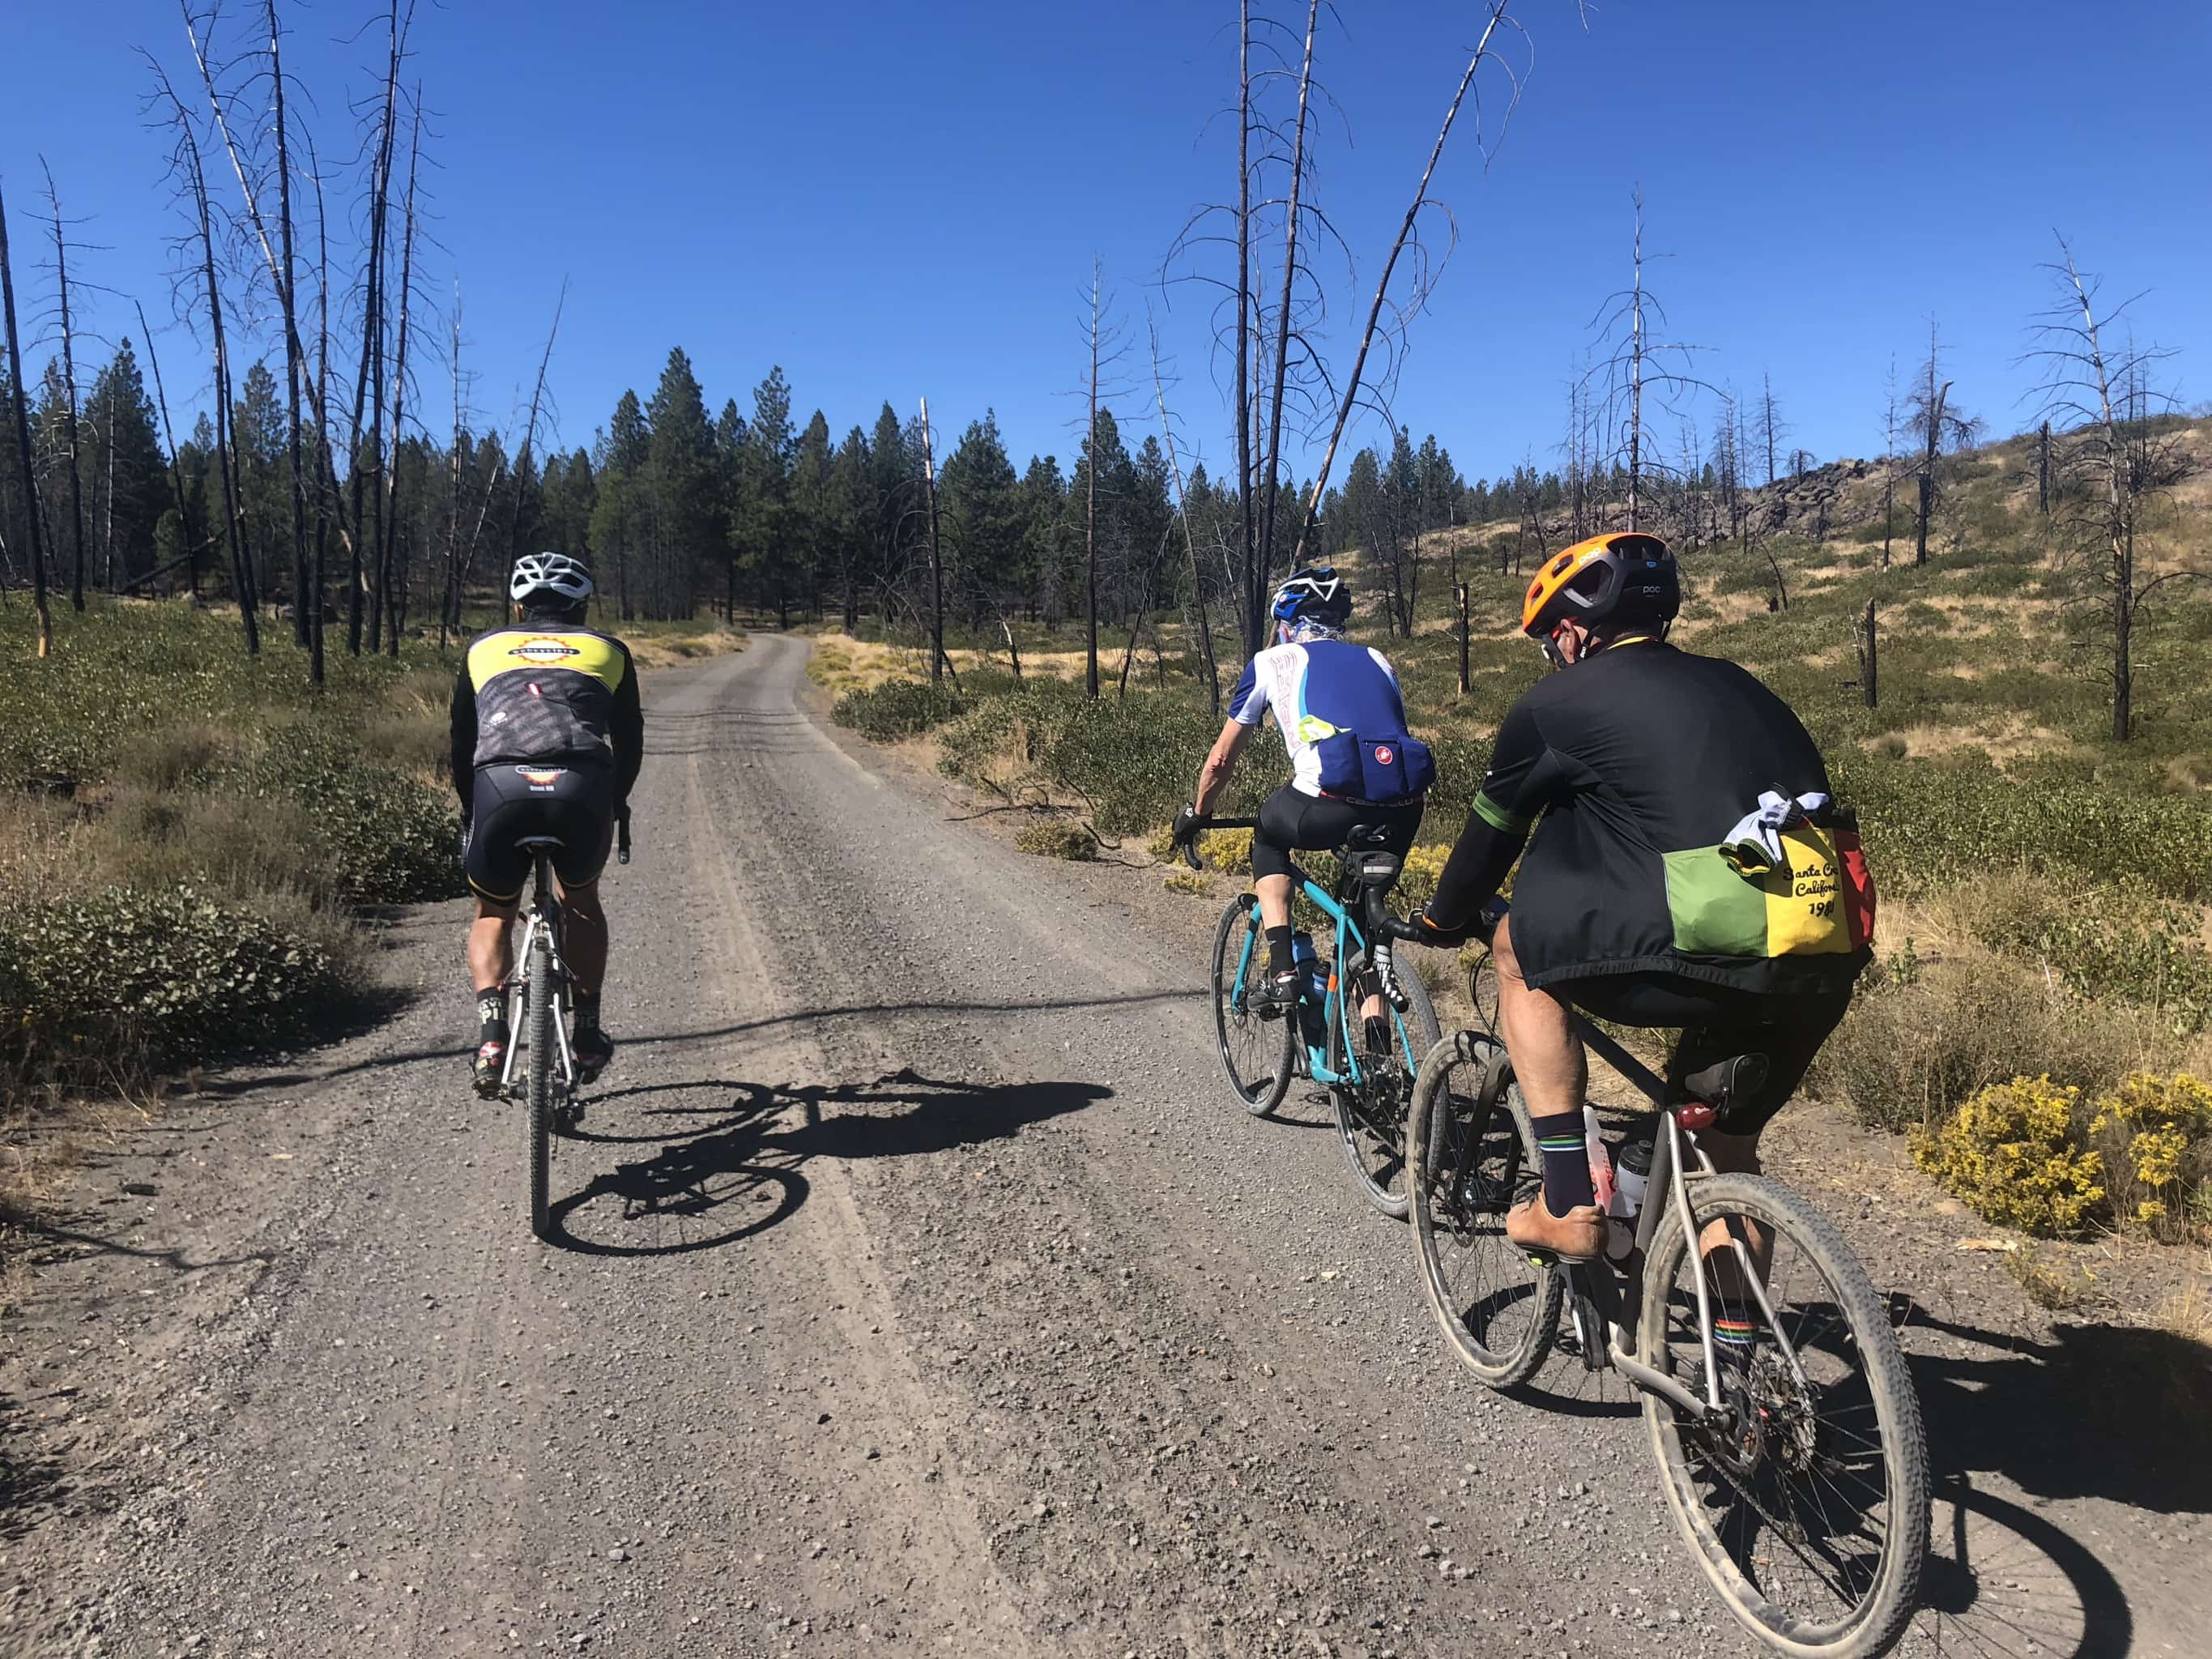 Group of cyclist on gravel road approaching Skyline Forest.